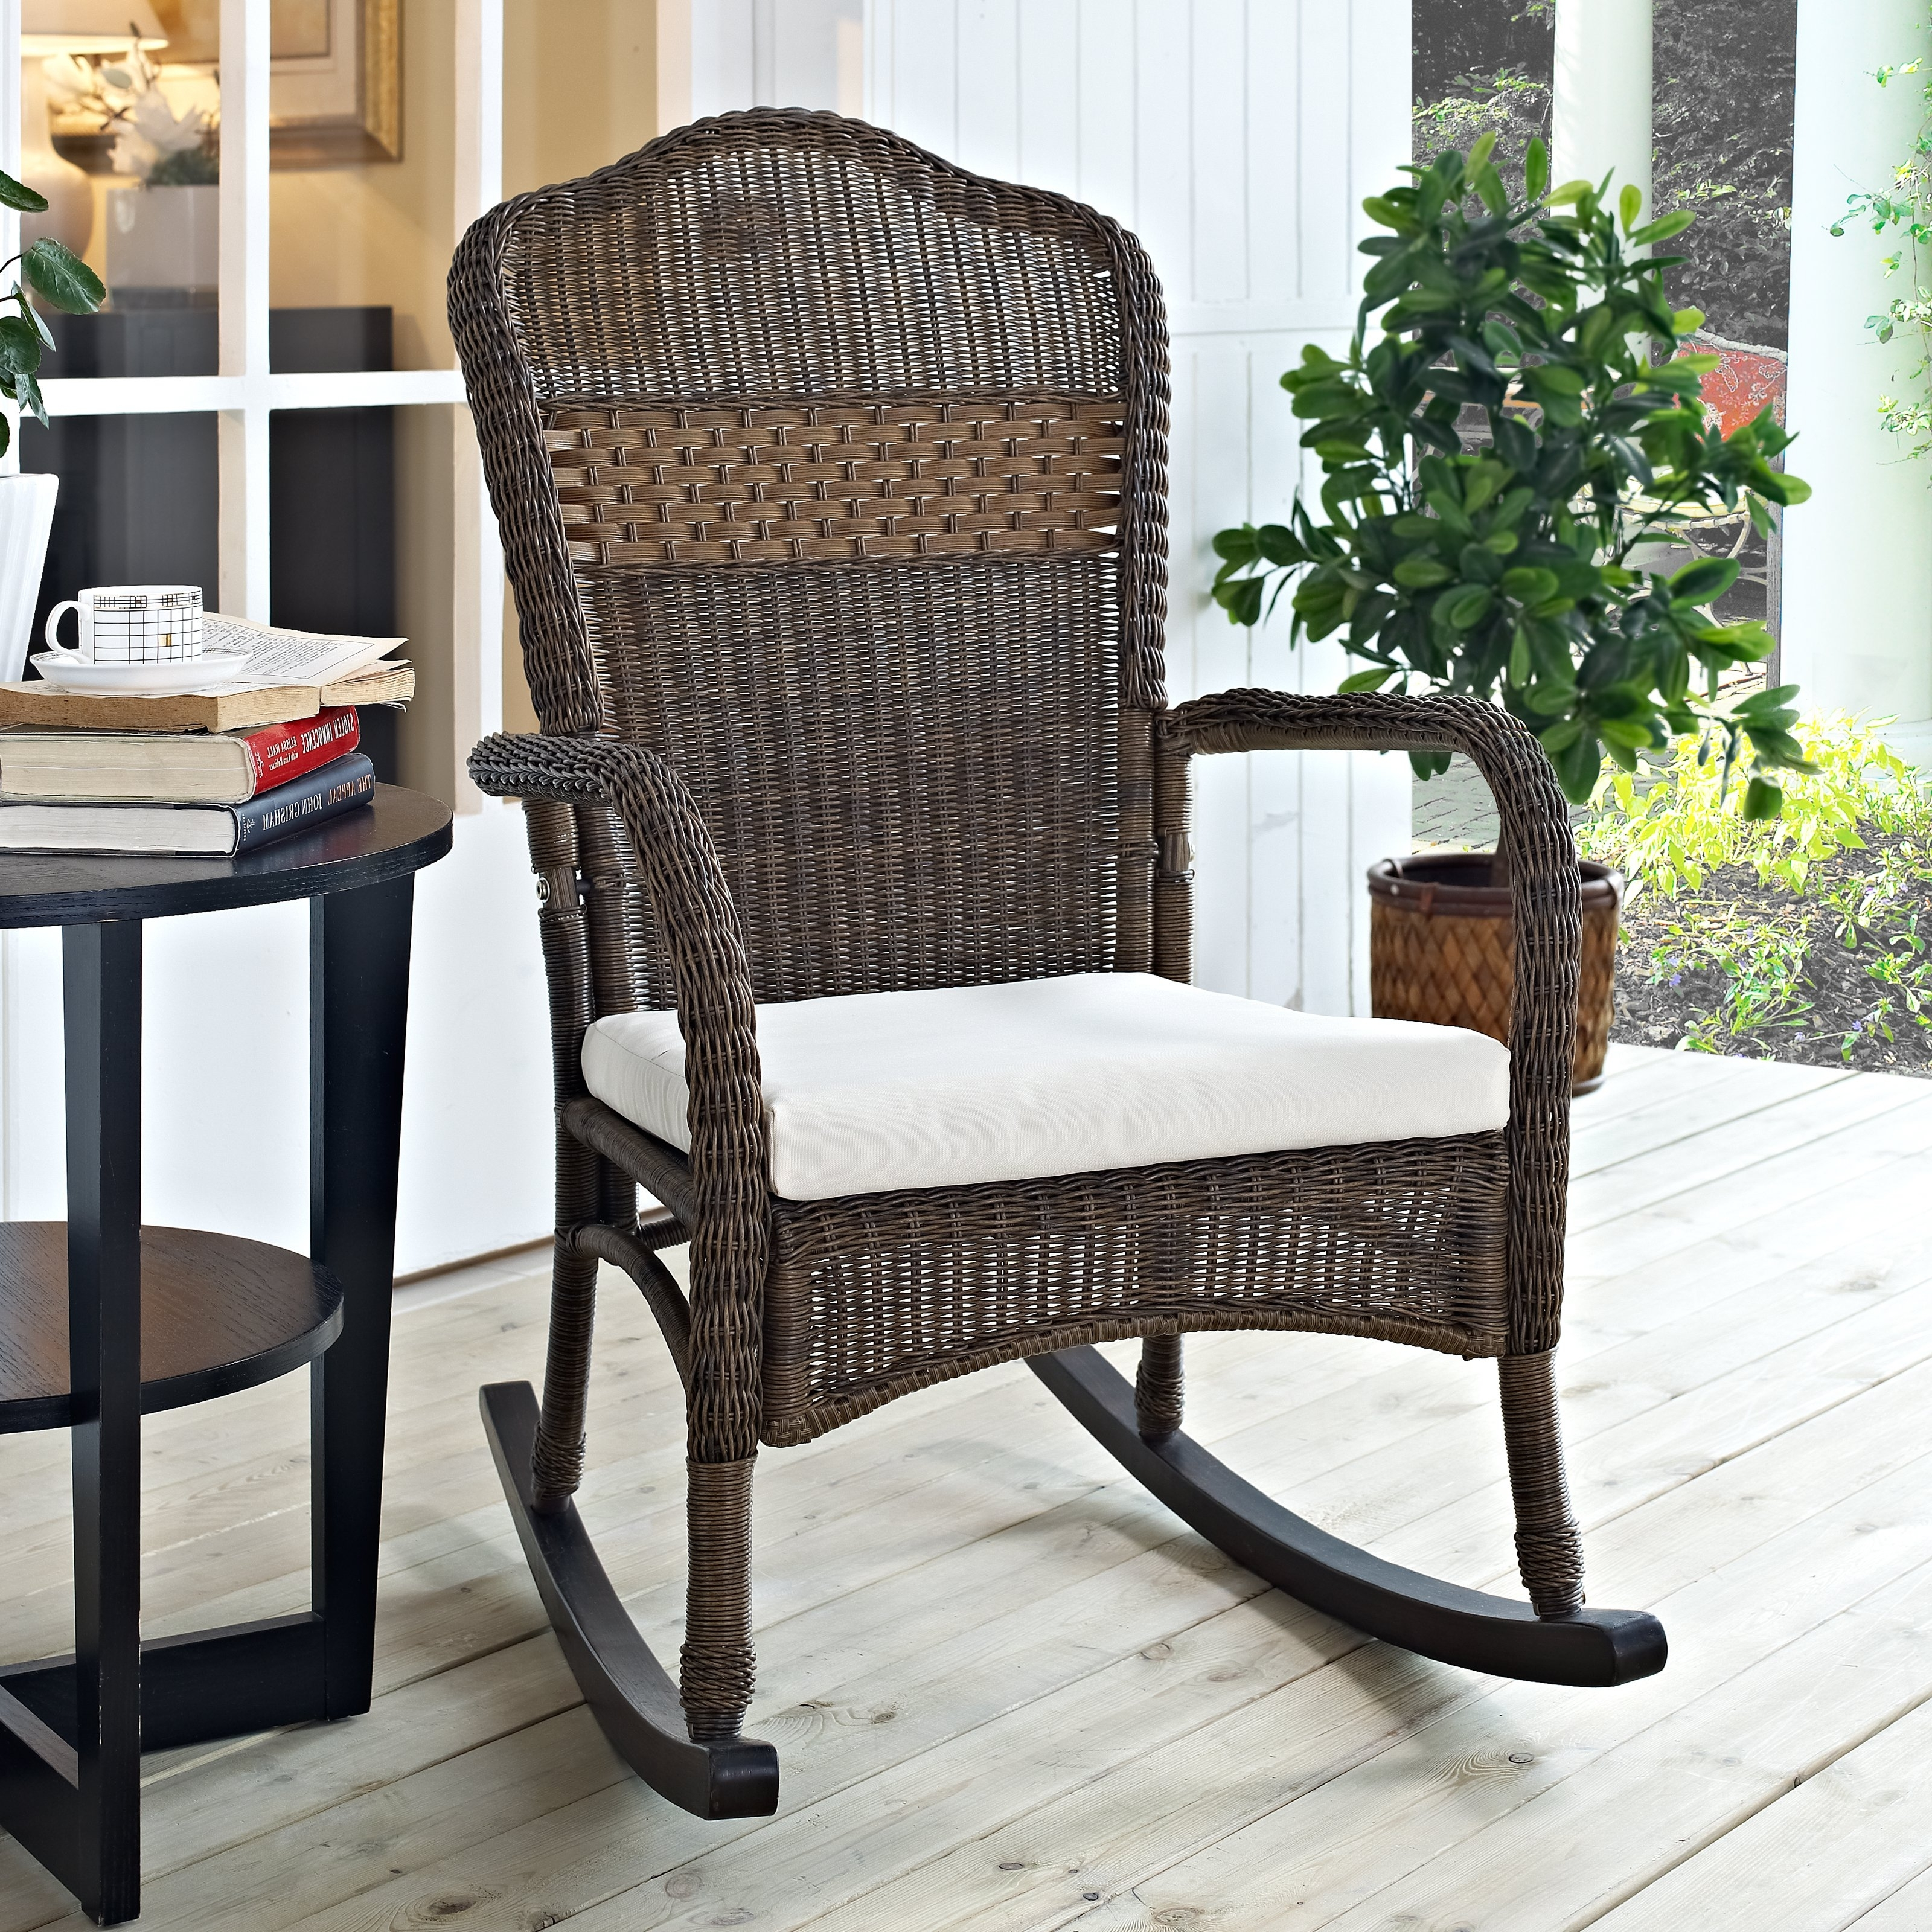 Favorite Used Patio Rocking Chairs Regarding Coral Coast Mocha Resin Wicker Rocking Chair With Beige Cushion (View 6 of 15)